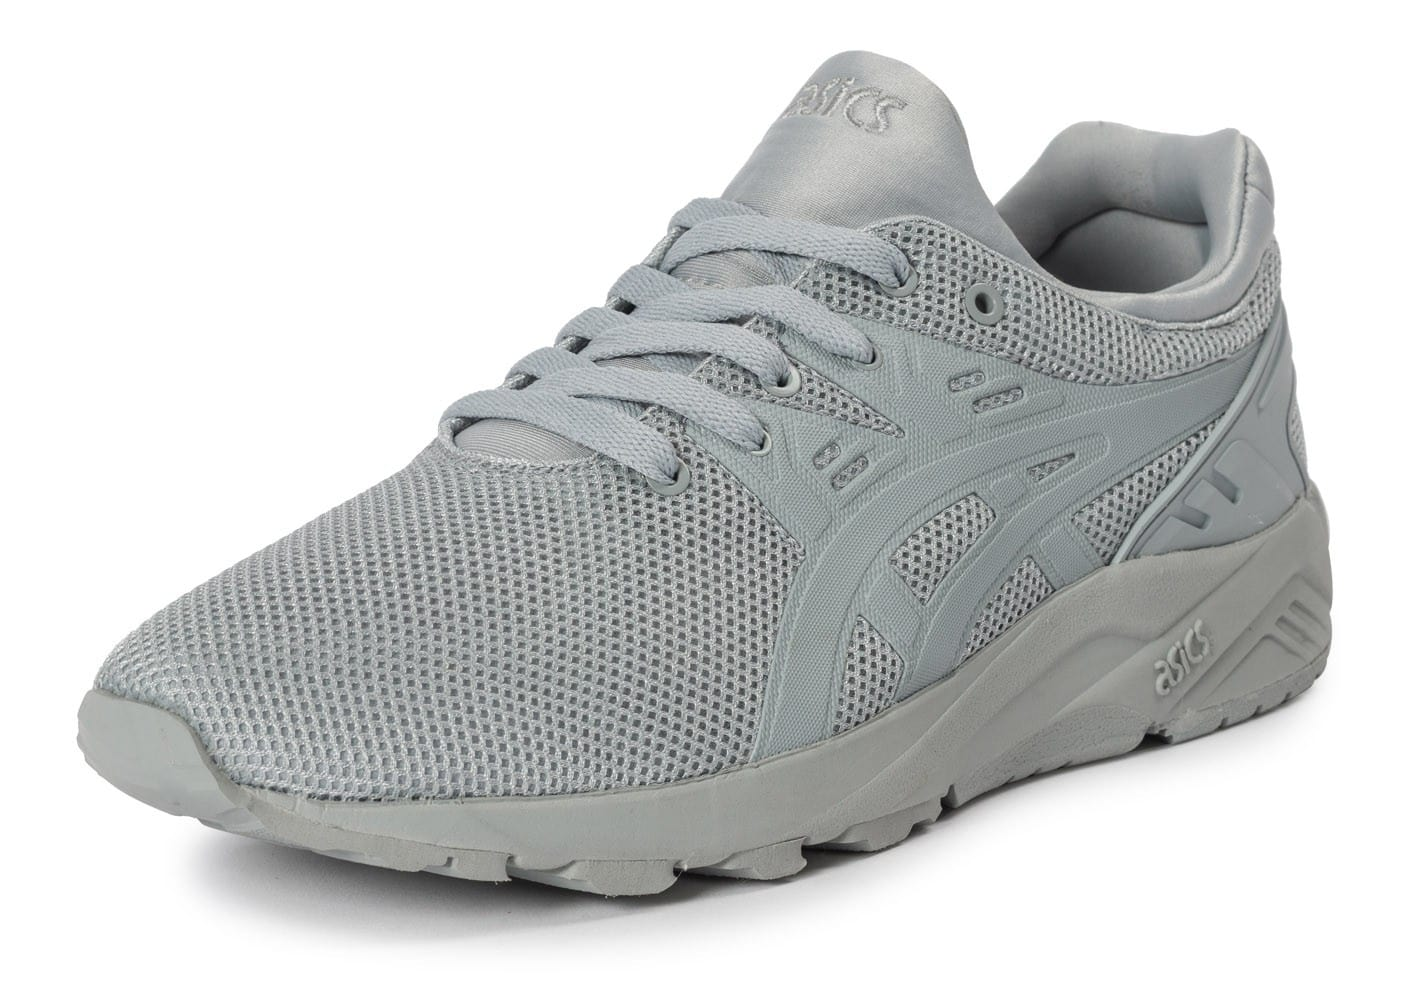 676d0c6241d Asics Gel Kayano Trainer Evo grise - Chaussures Baskets homme ...